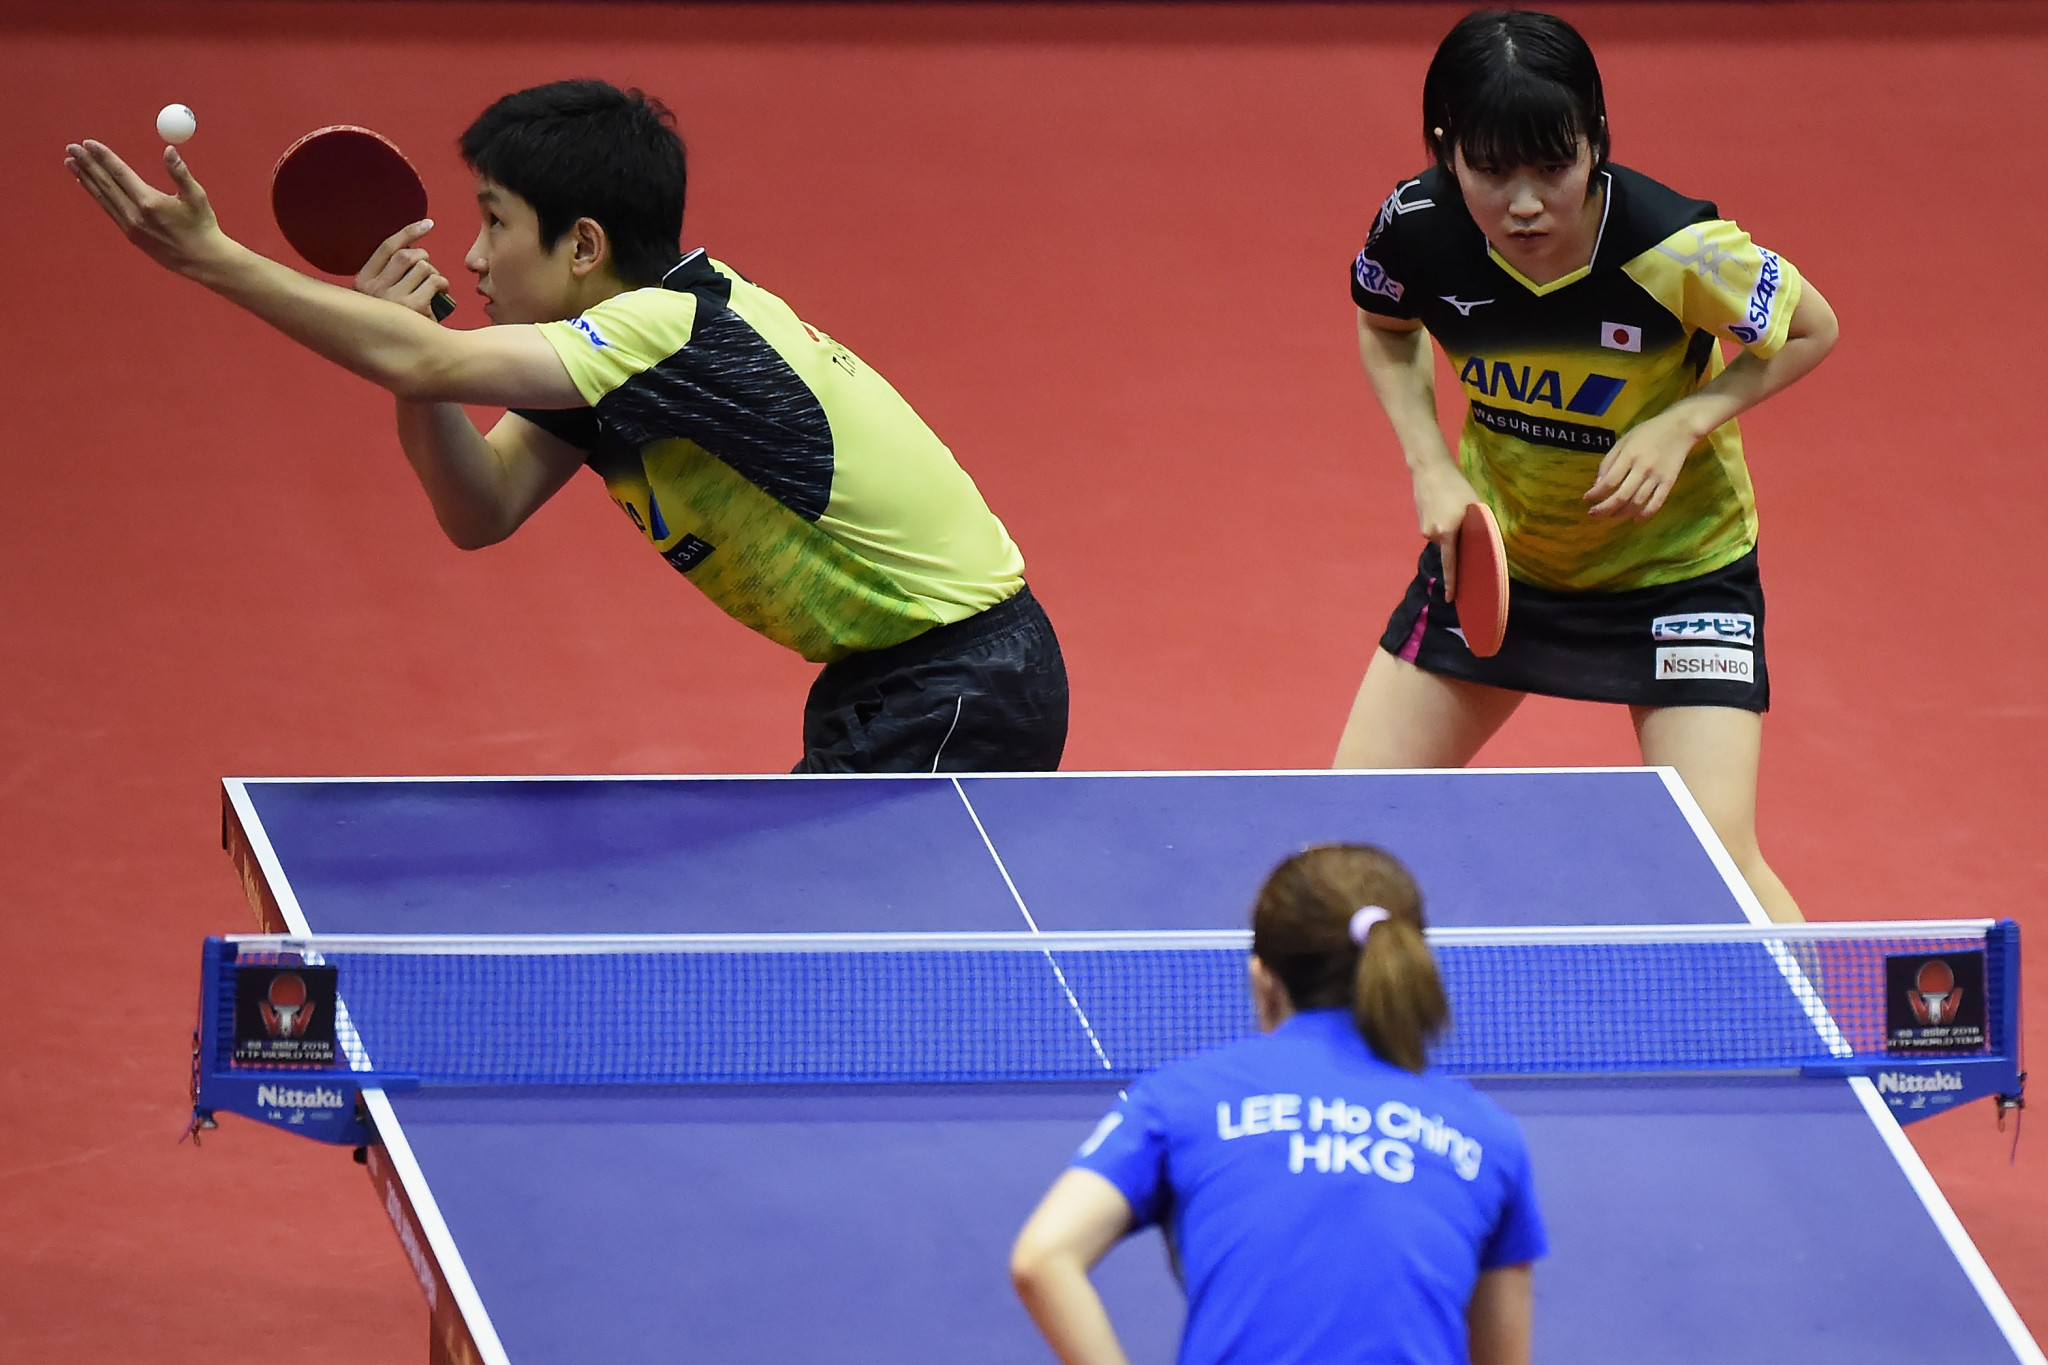 ITTF to suspend all activity until end of April over coronavirus